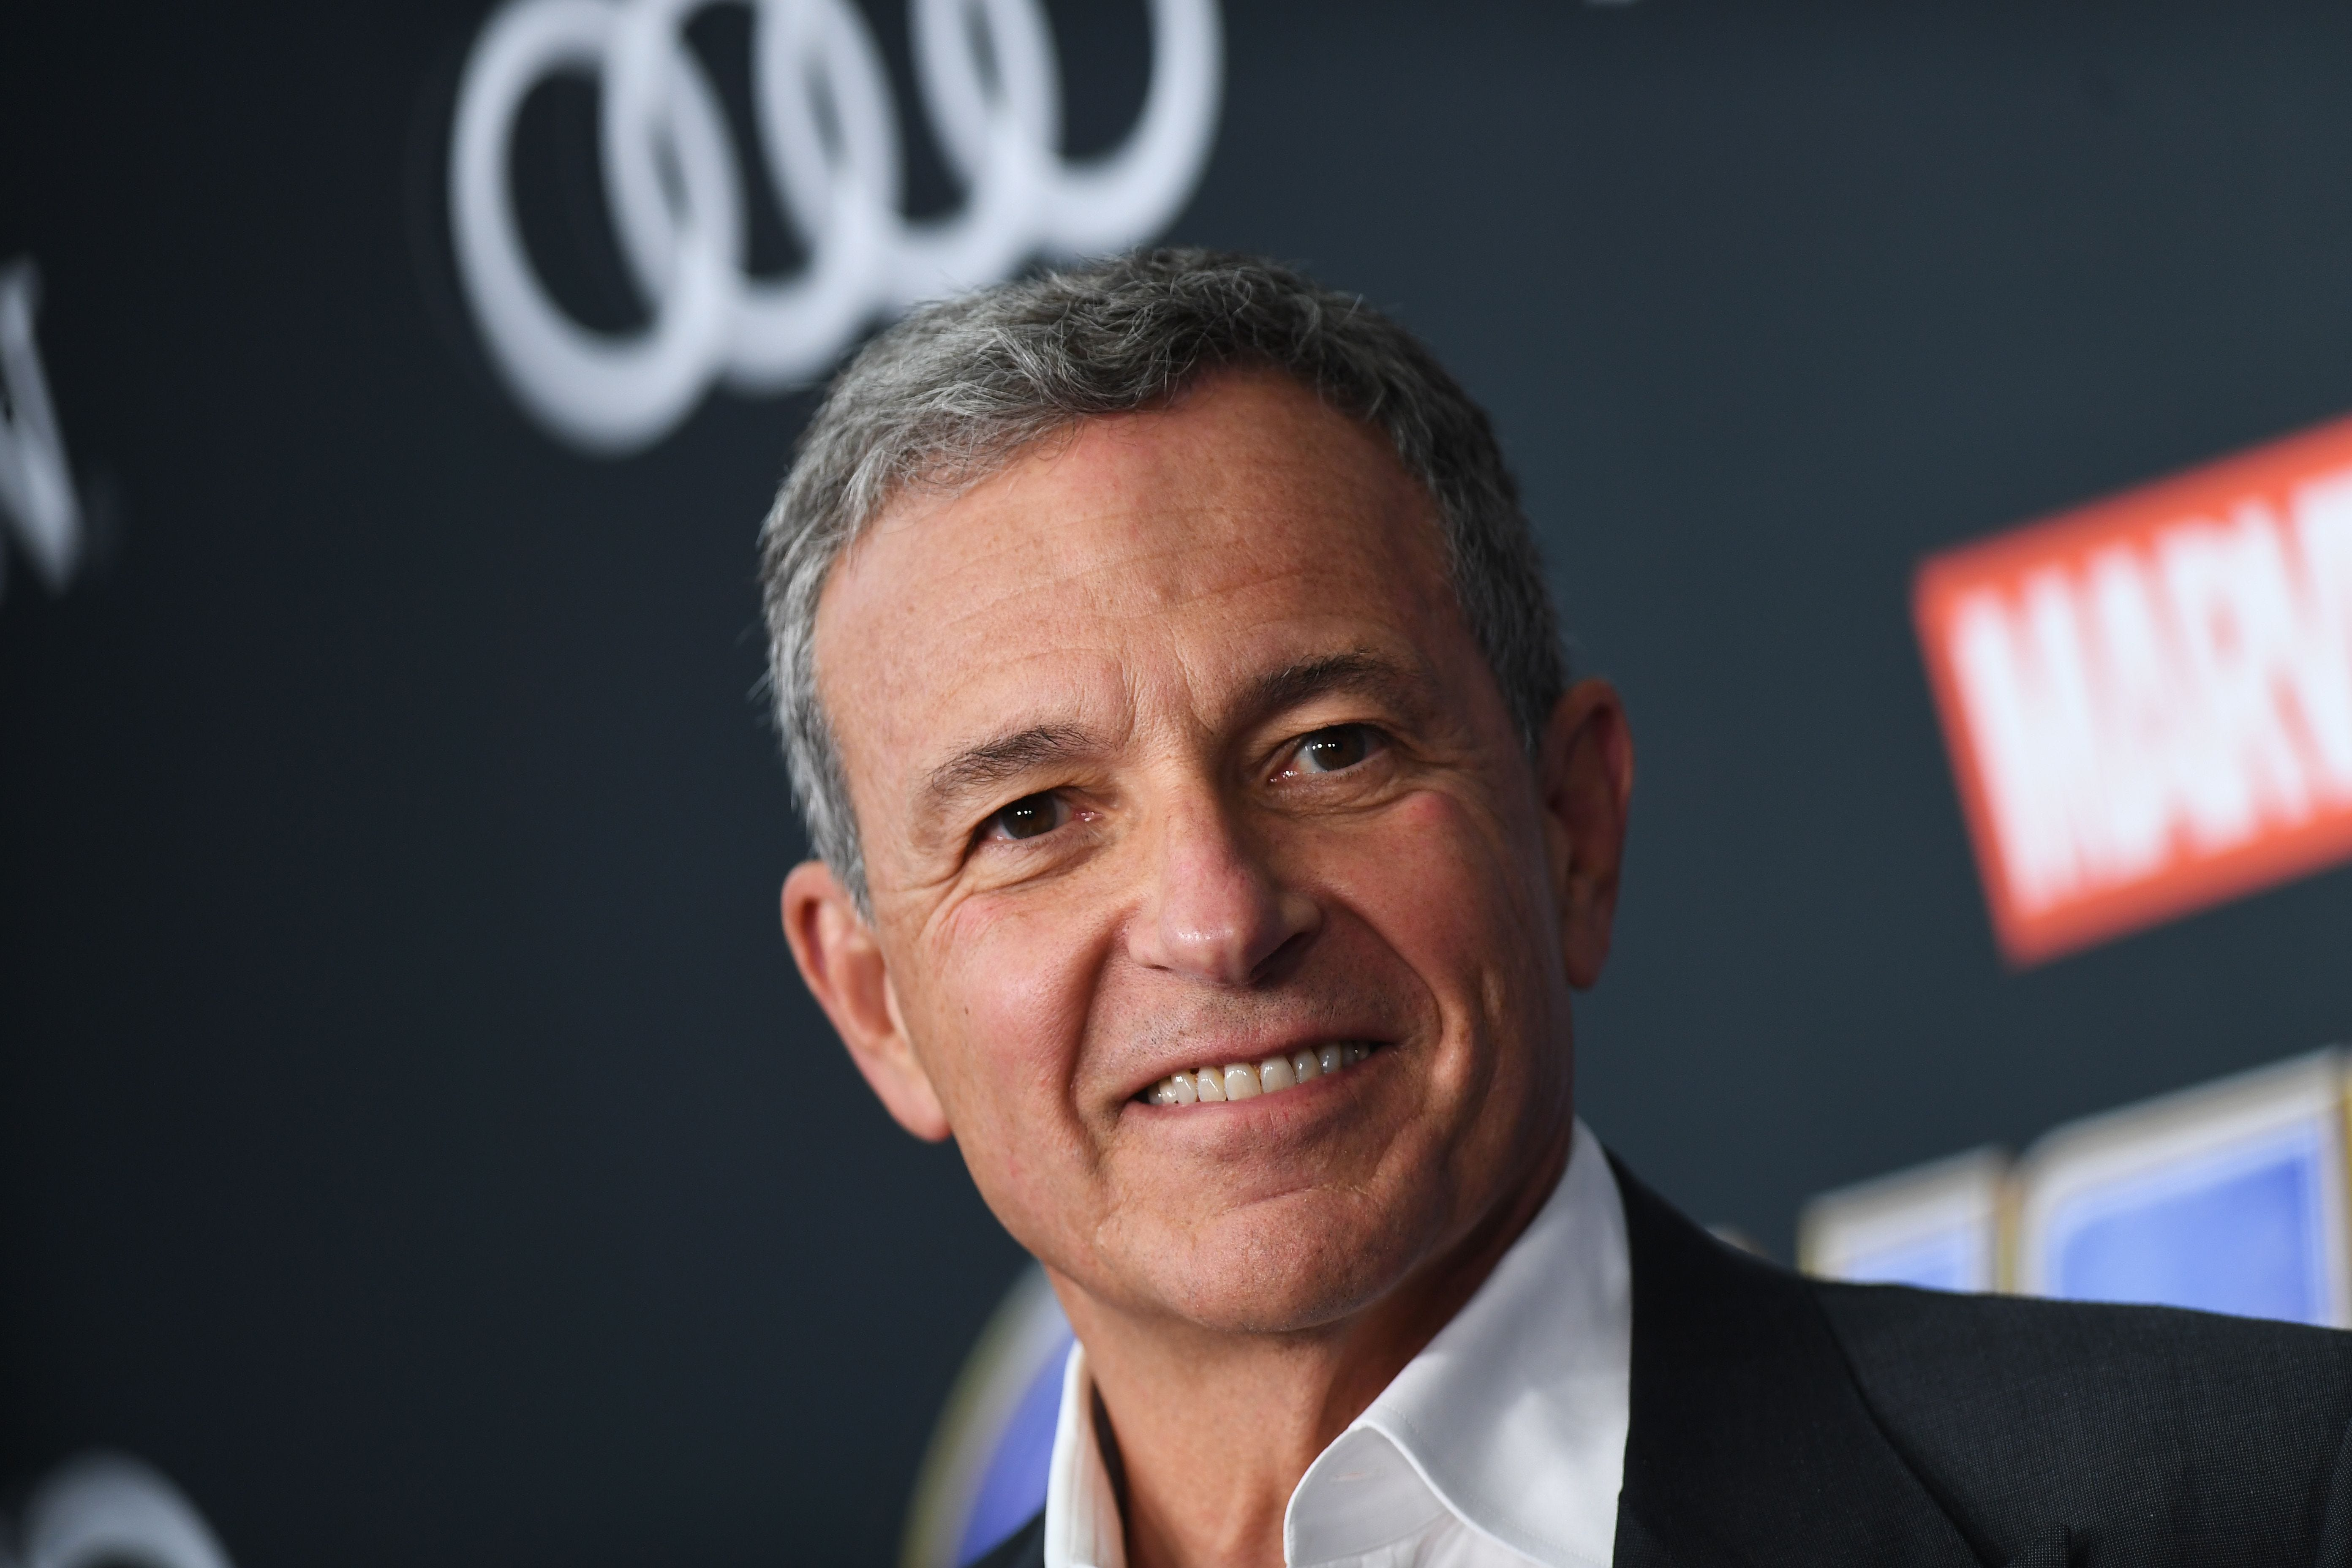 Disney CEO: Filming in Georgia will be 'very difficult' if abortion law takes effect